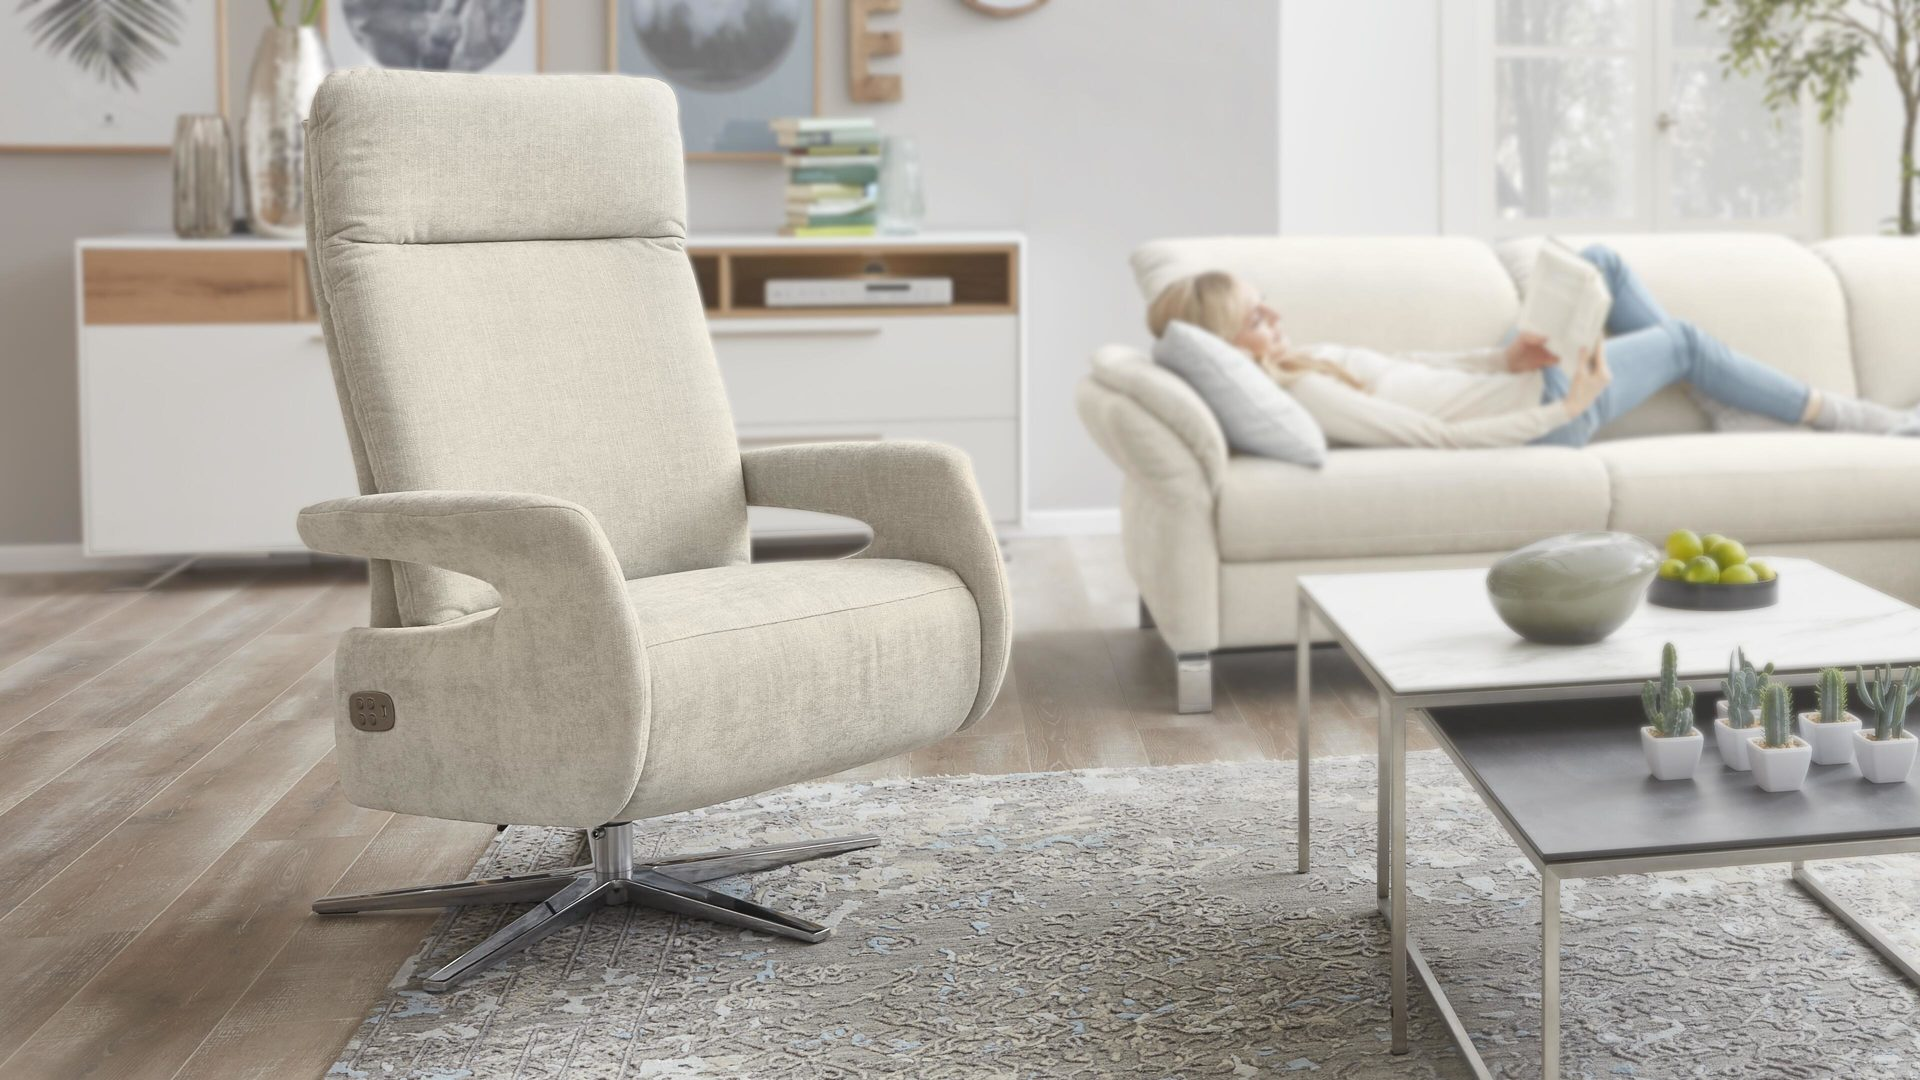 Relaxsessel 3c candy | il aus Stoff in Beige Interliving Sessel Serie 4510 – Relaxsessel cremefarbener Bezug Yelda & Sternfuß